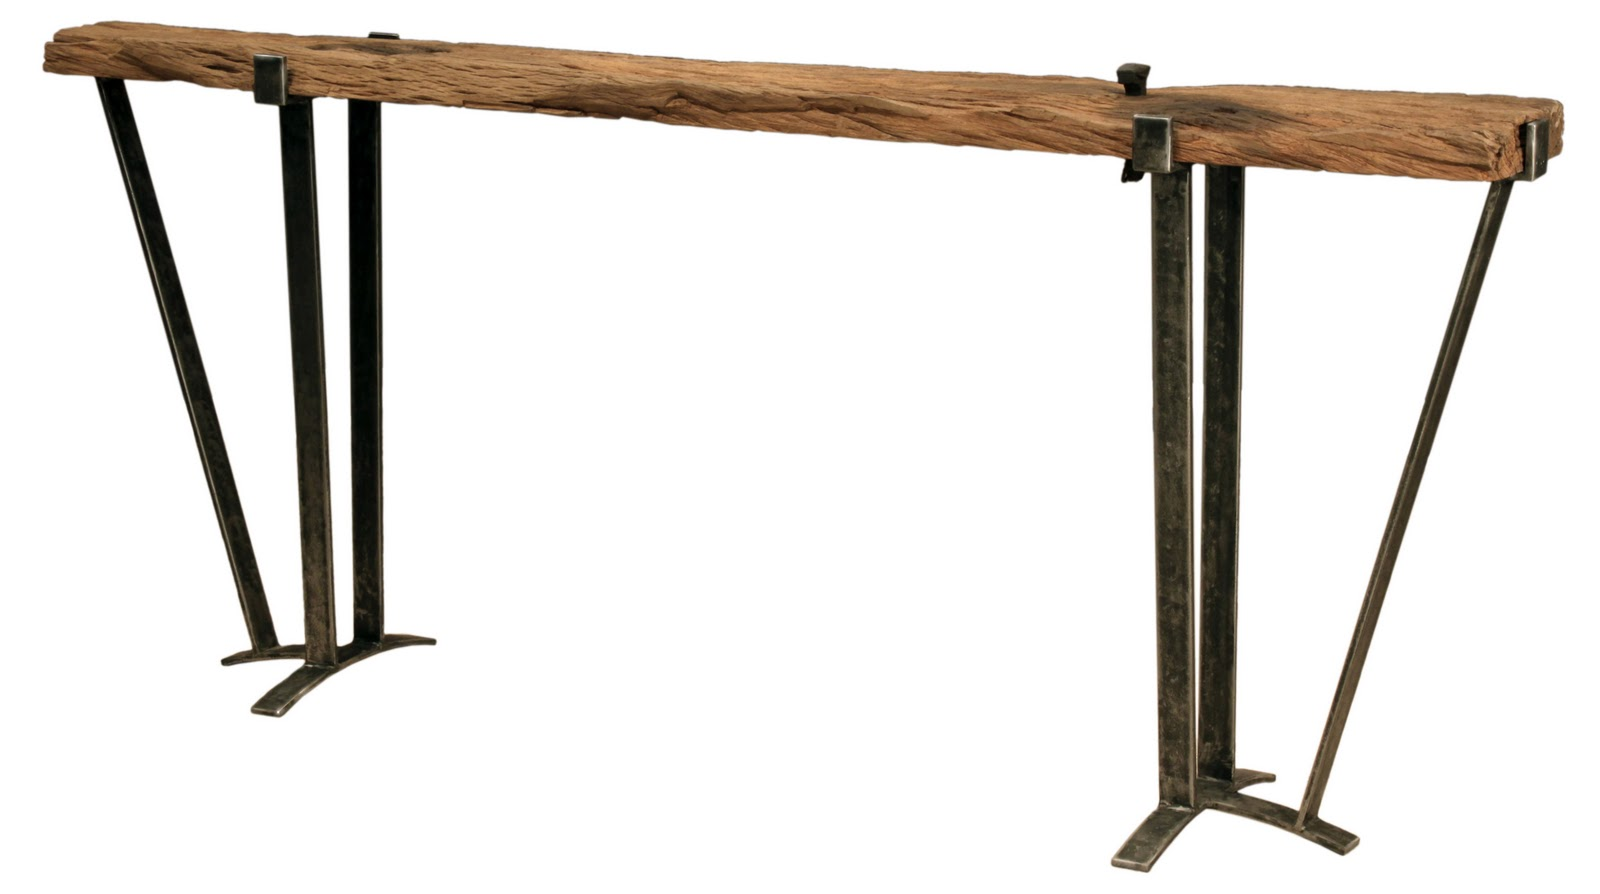 Gift & Home Today Furniture from reclaimed wood